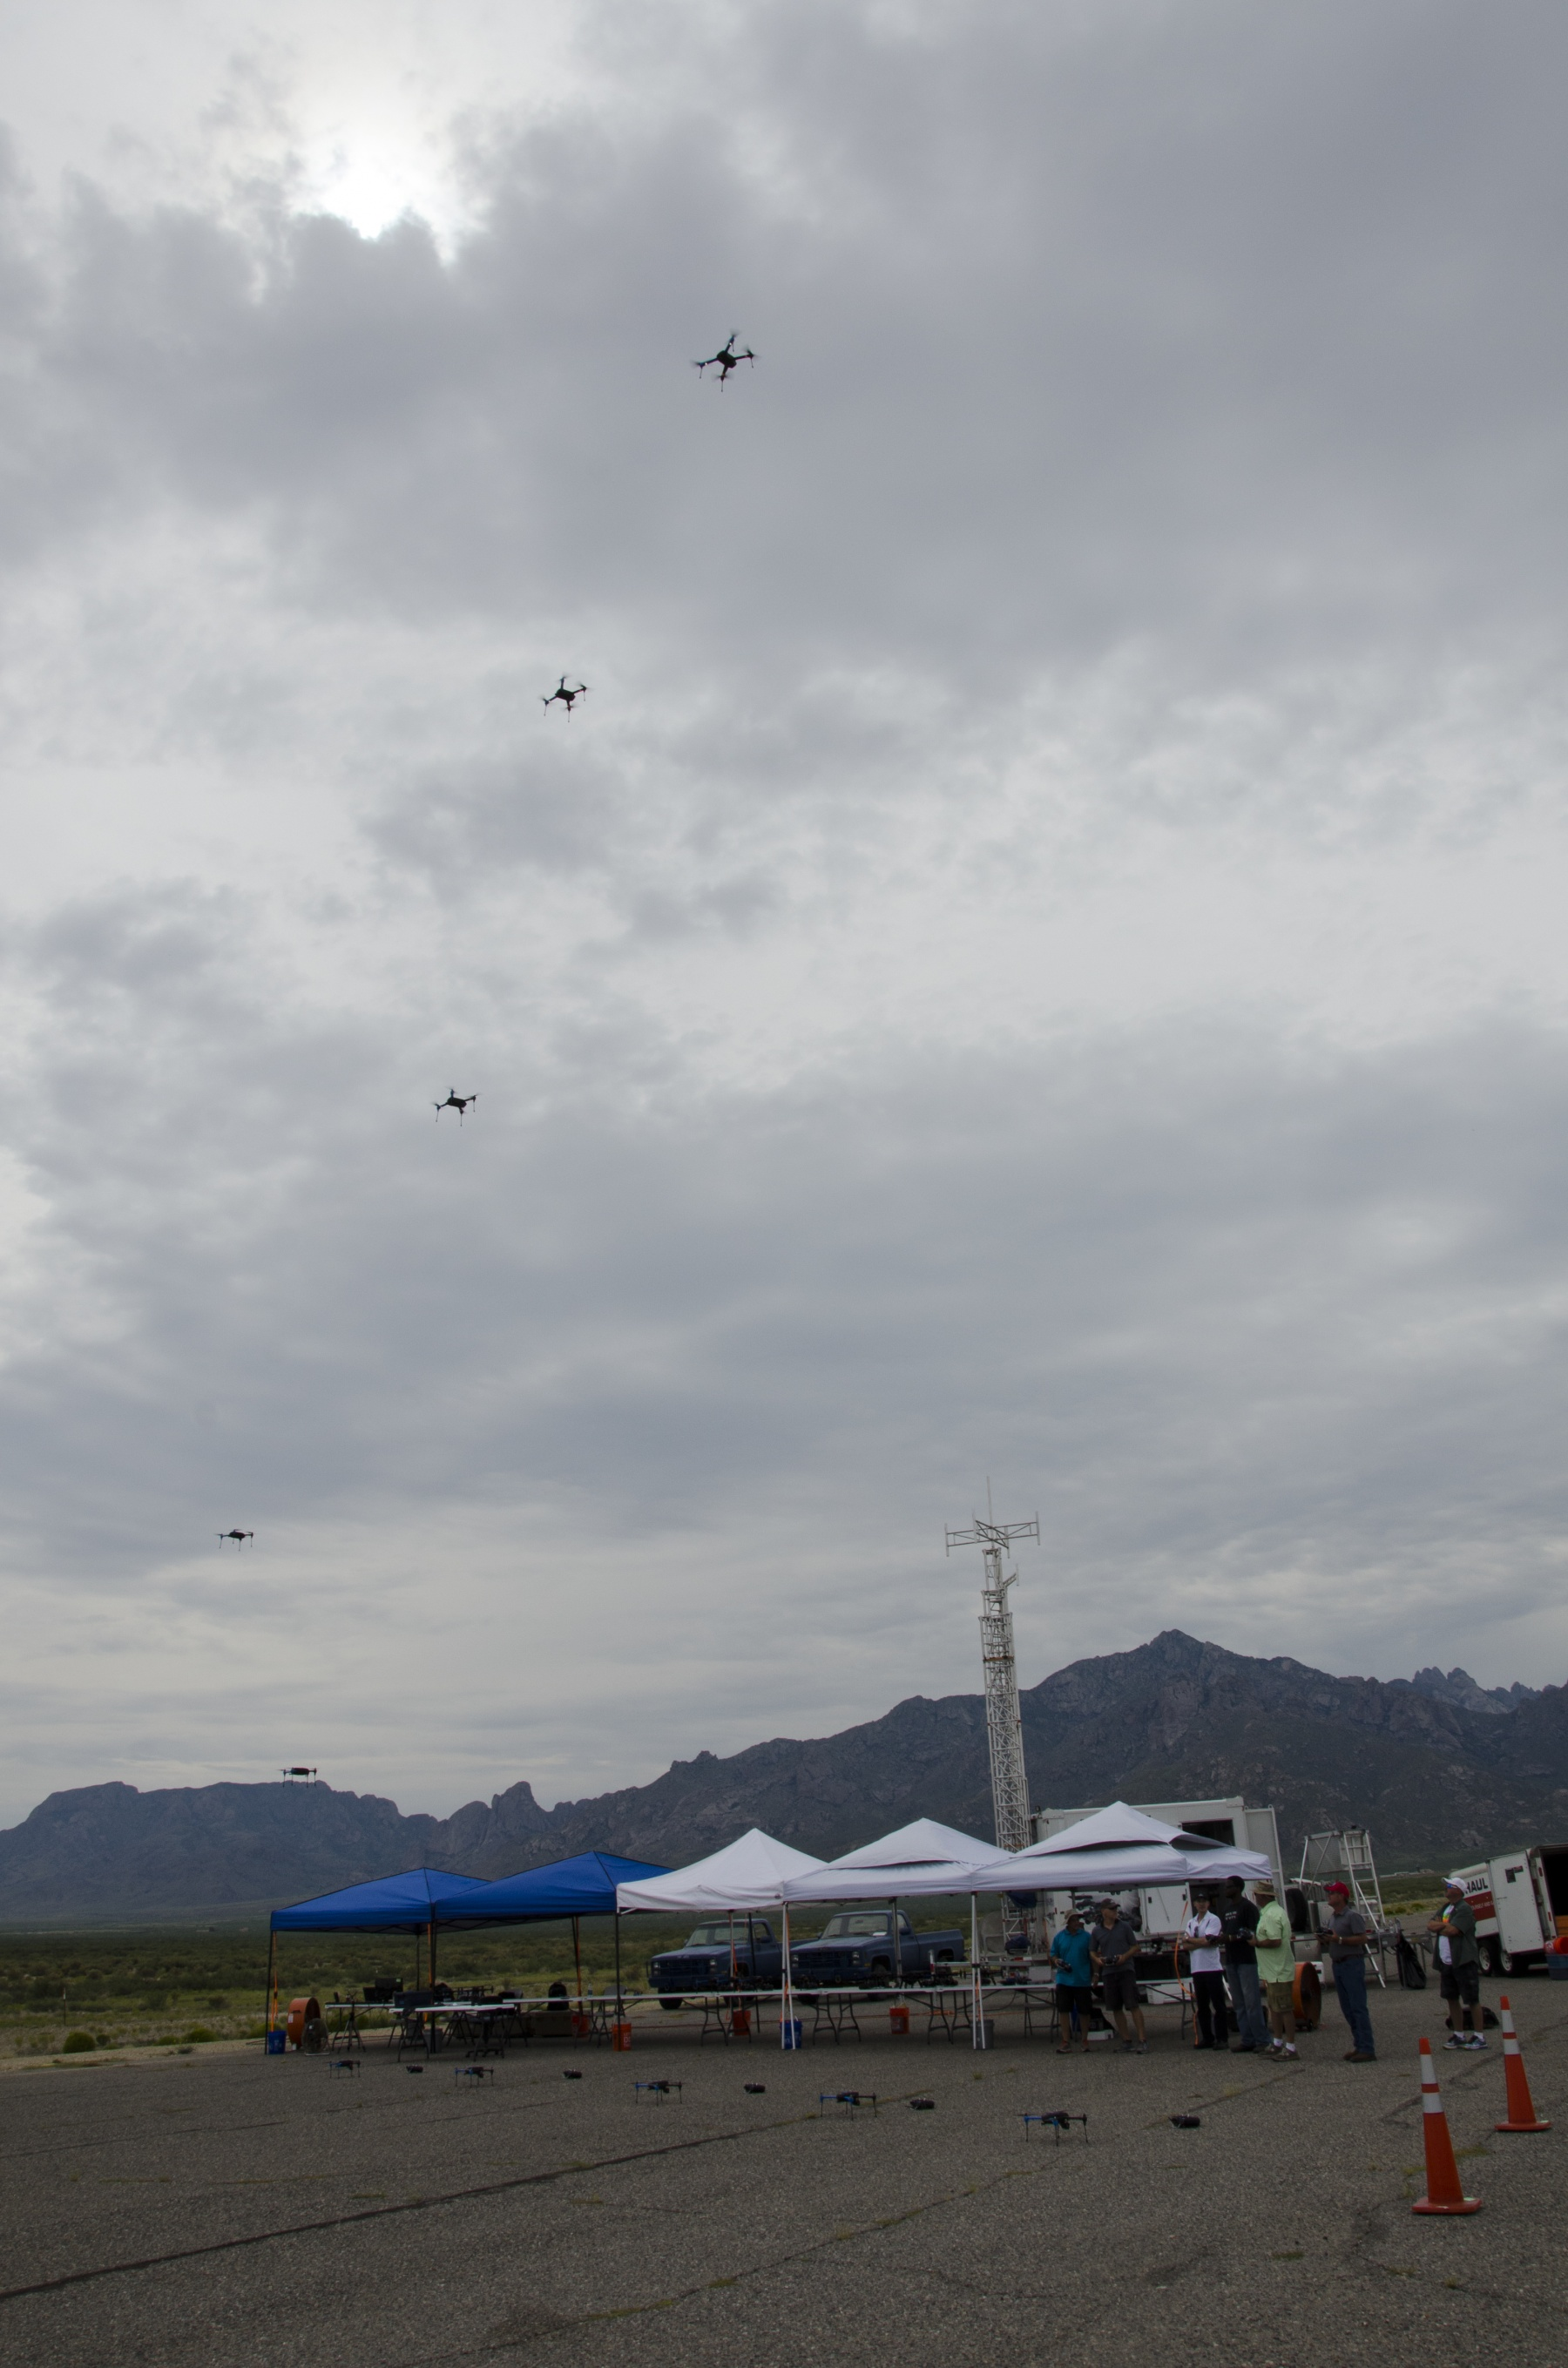 Small, expendable robots scattered behind enemy lines—like these off-the-shelf drones launch from White Sands Missile Range in September 2015, in preparation for Network Integration Evaluation 16.1—can be really disruptive to the enemy, according to Paul Scharre, a Ranger veteran who's now a robotics expert at the Center for a New American Security. (Photo by John Hamilton)